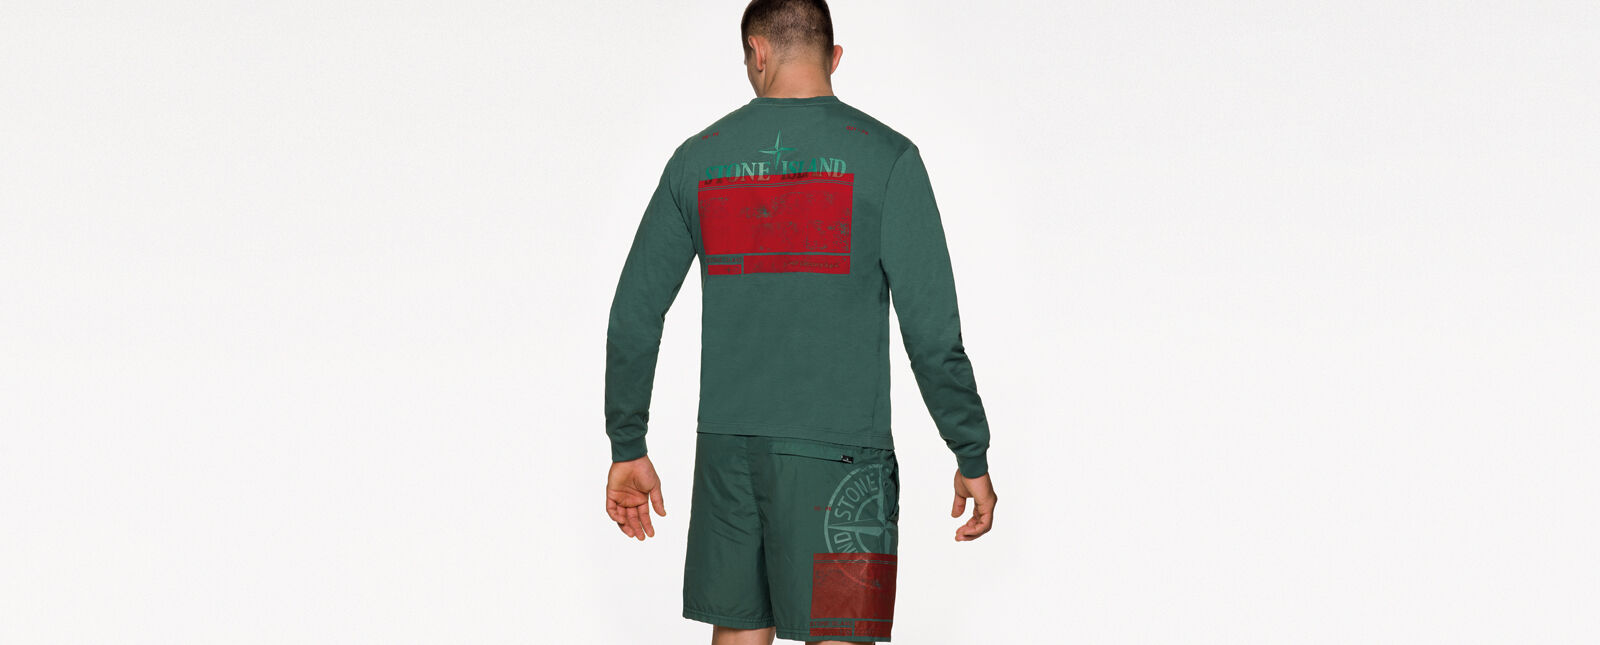 Back view of model wearing a green crewneck t shirt with long sleeves and a red print on the back and green shorts with a red print and the Stone Island compass rose logo on the right thigh.